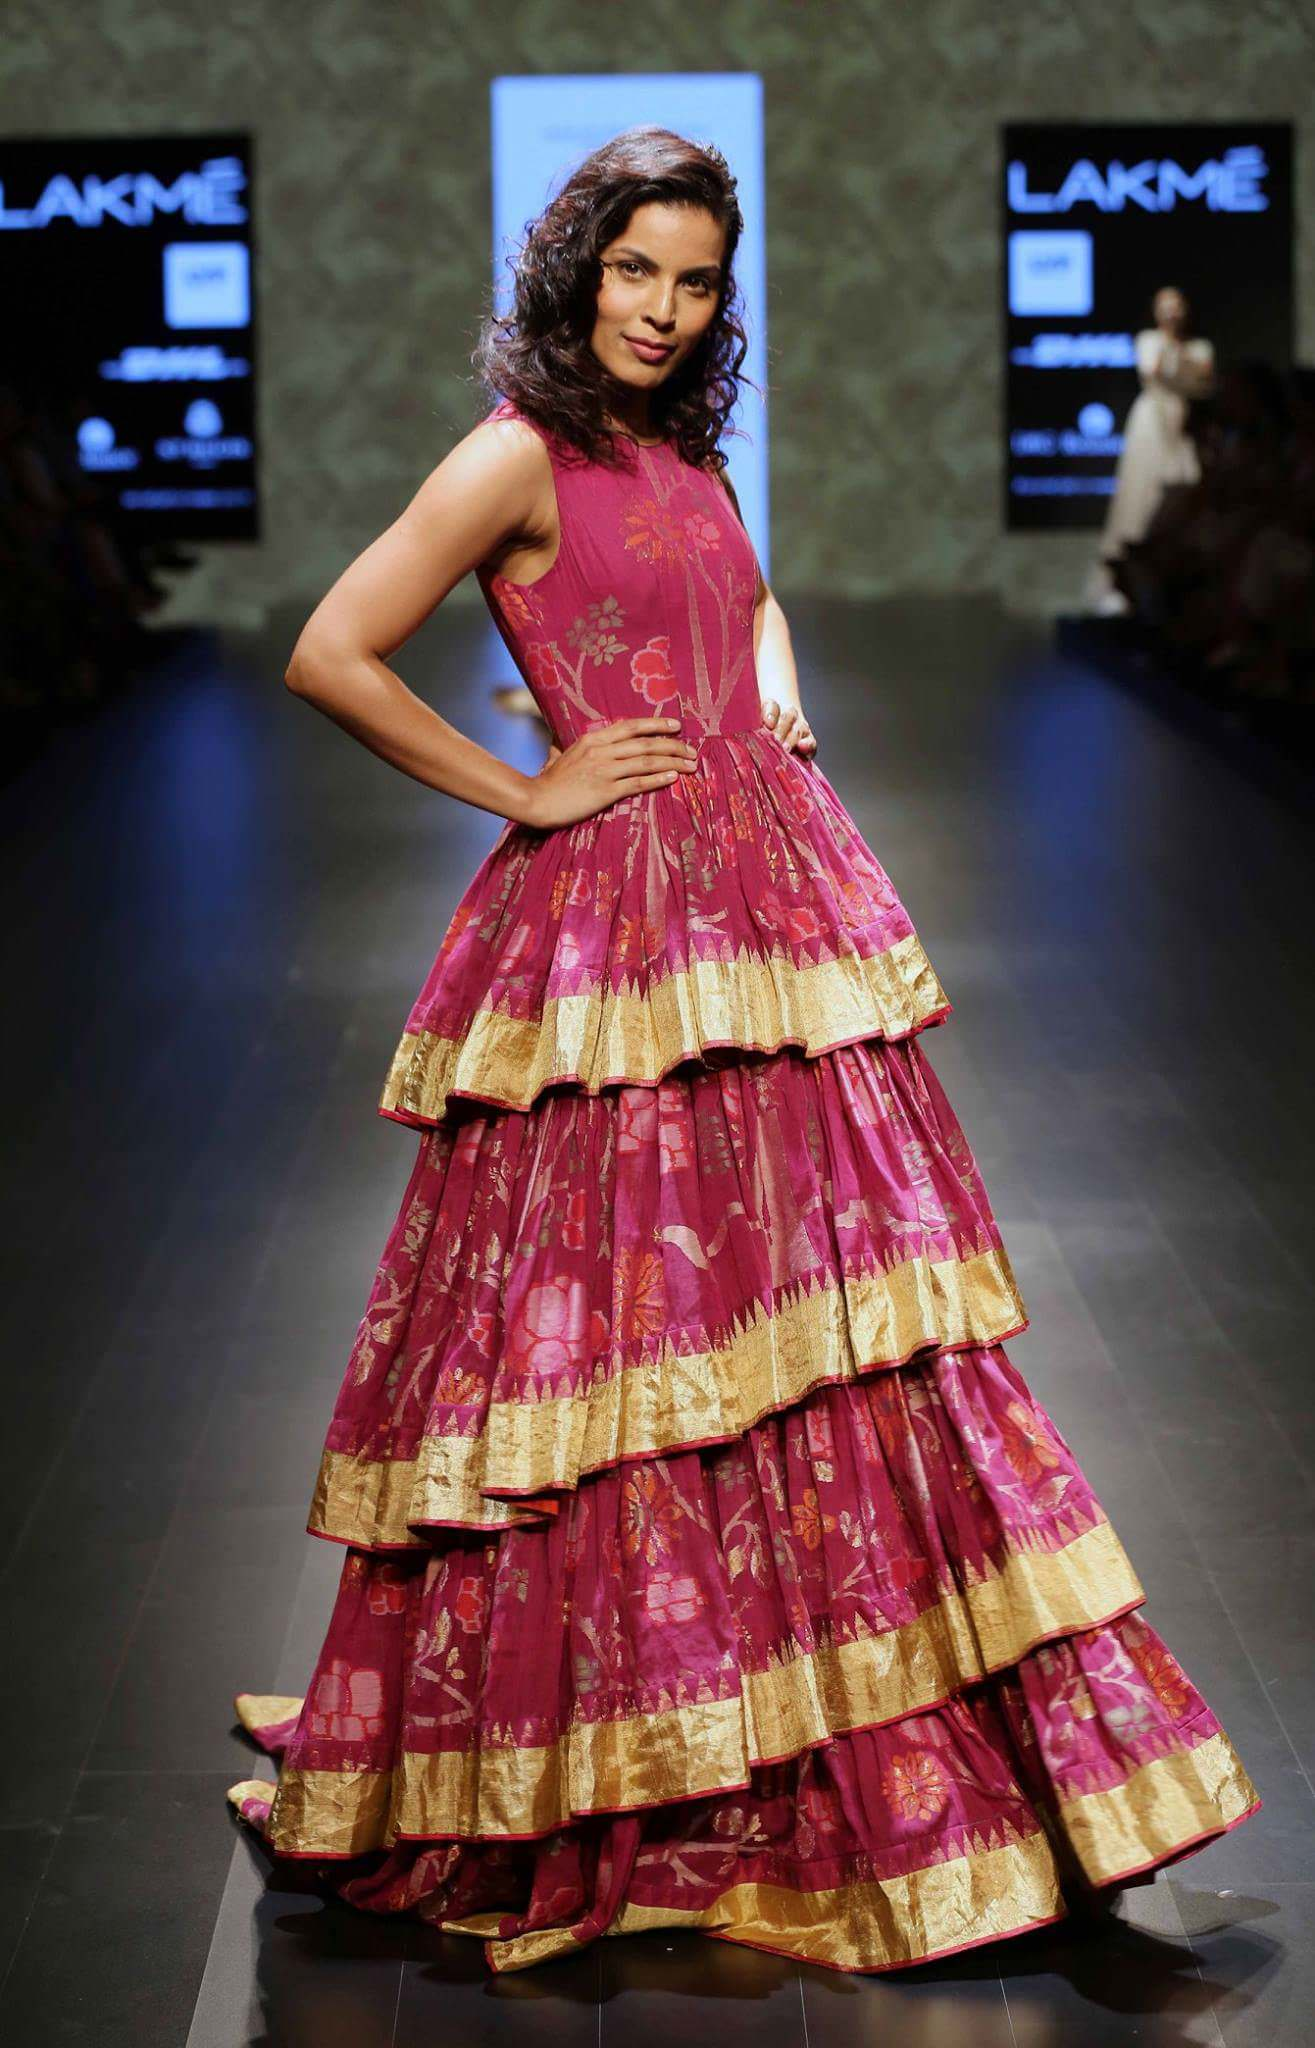 Dipti Gujral layers the look in a Gaurang Shah creation.